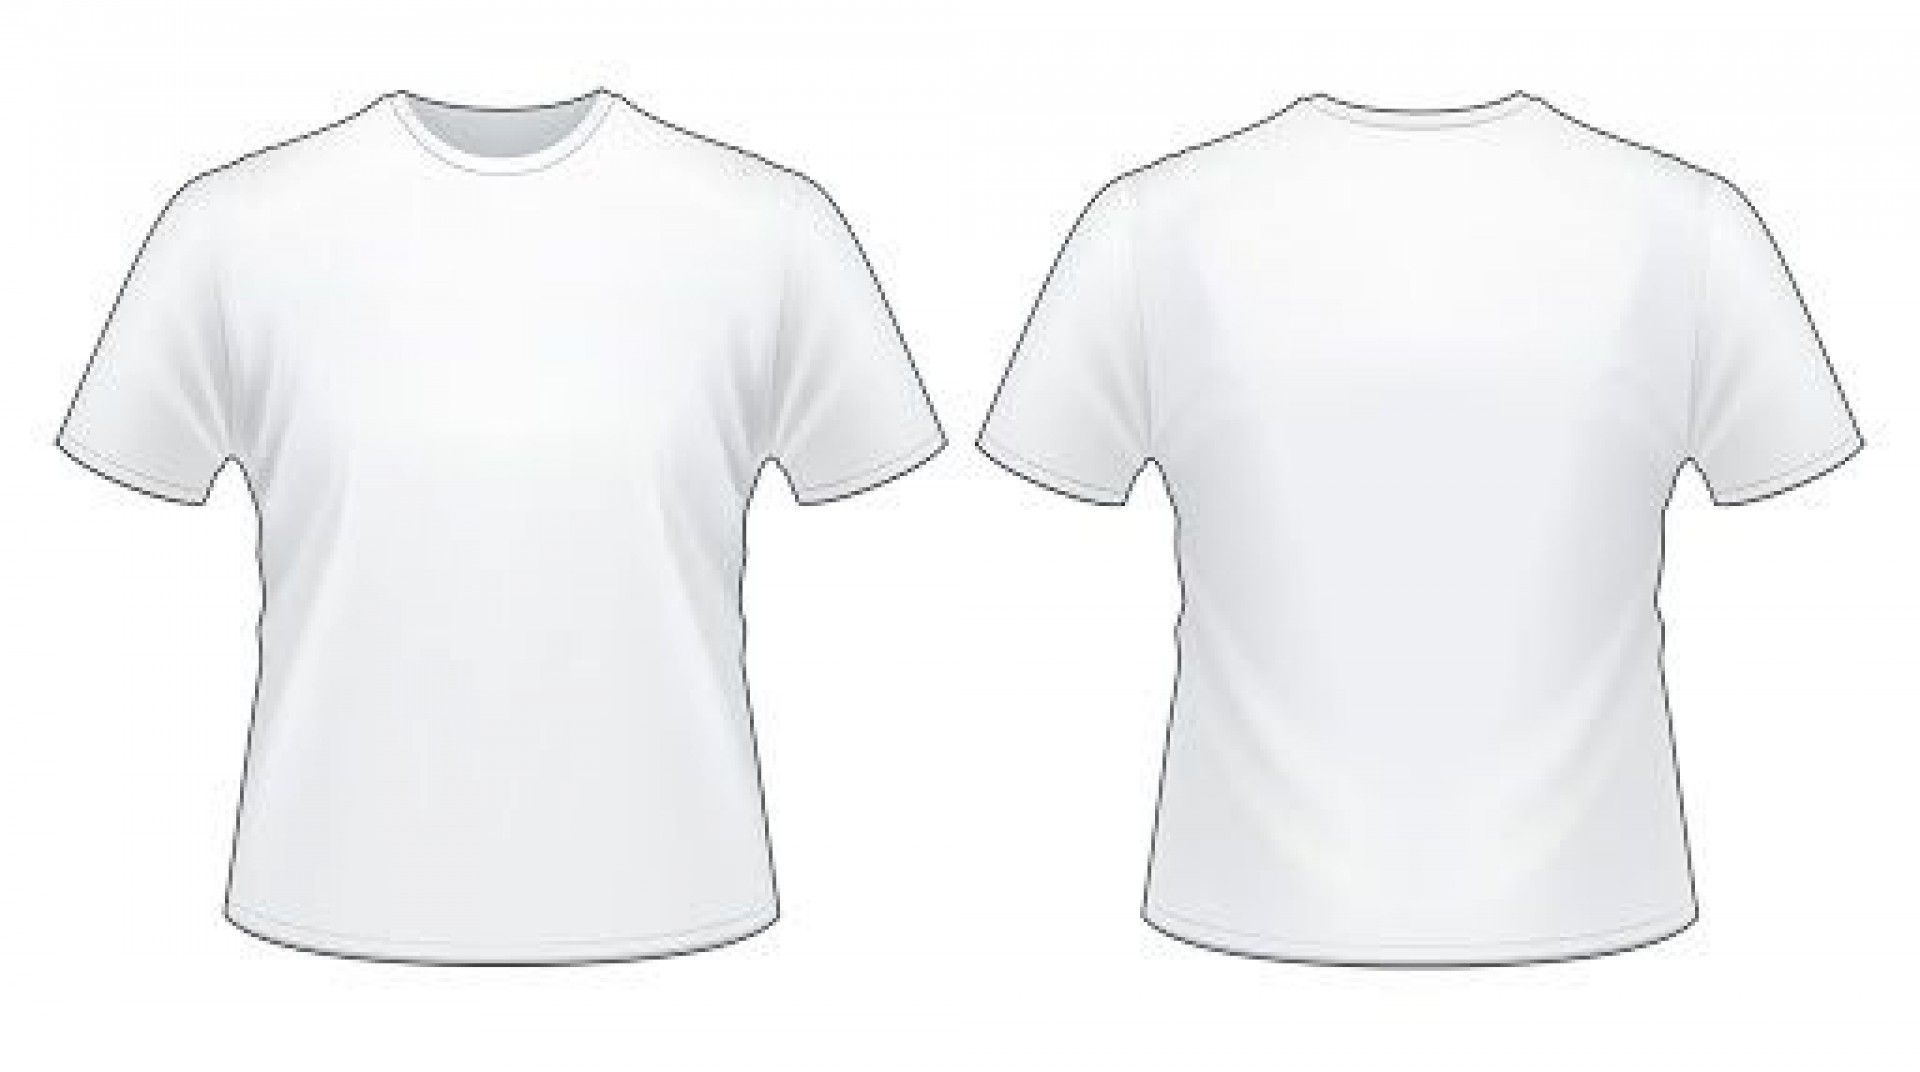 002 Archaicawful T Shirt Design Template Psd Sample  Blank T-shirt V Neck Photoshop Collar1920